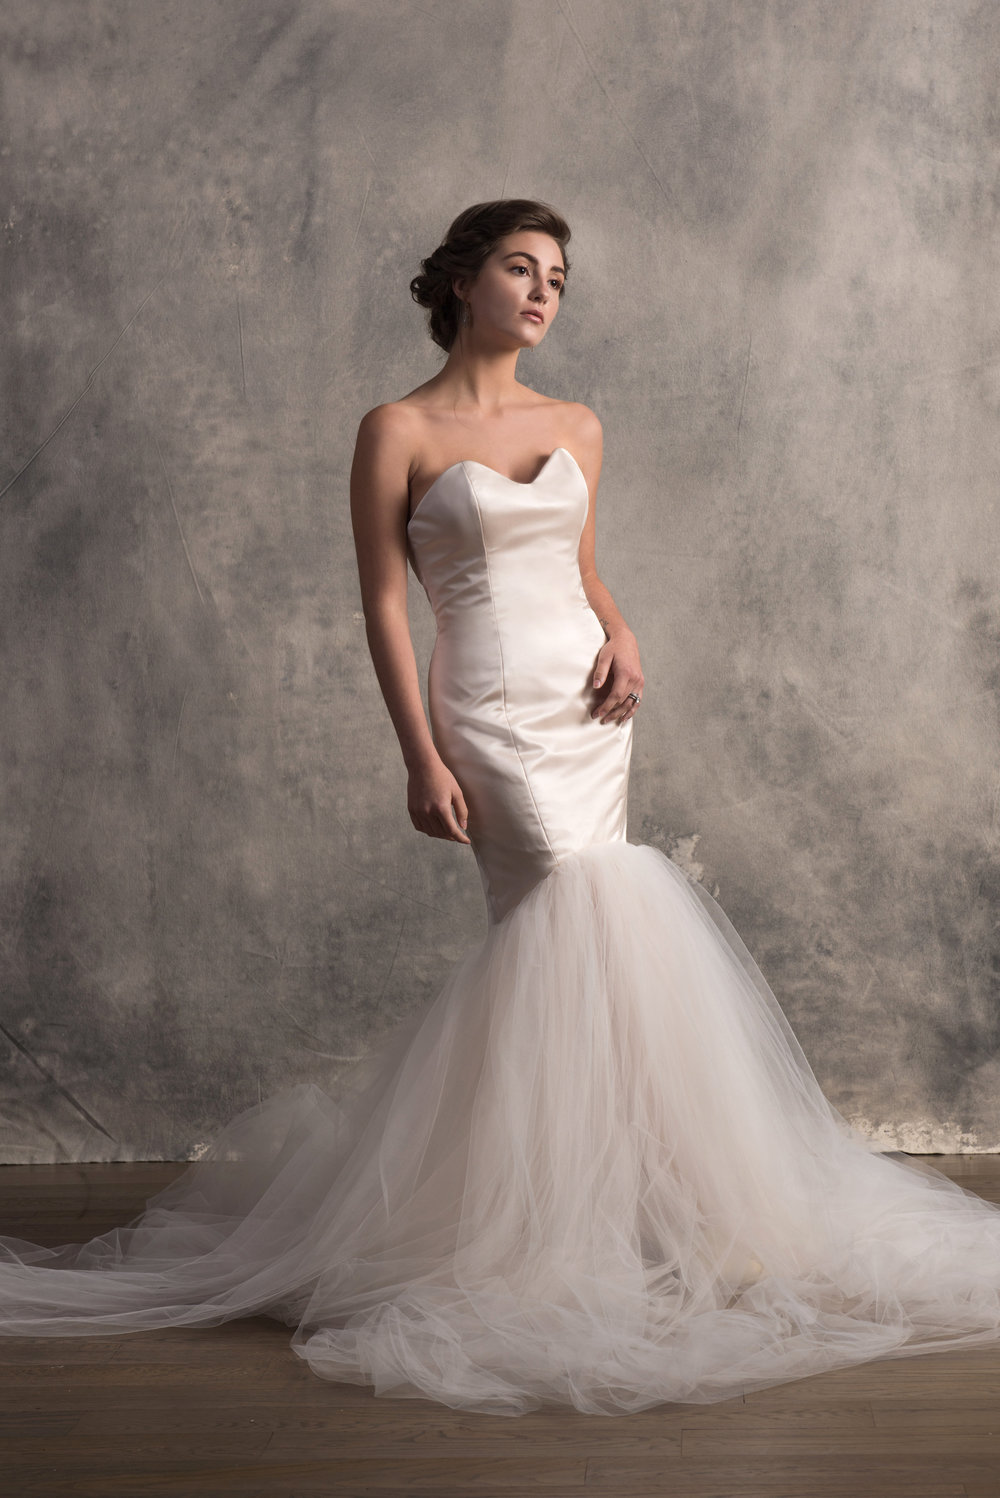 Atla - Silk Duchess- Satin frames the figure, bracing for the frothy cascade of tulle in this mermaid gown. It comes with little surprise that this Goddess was the woman of the freeing water. She's soft and elegant and timeless.